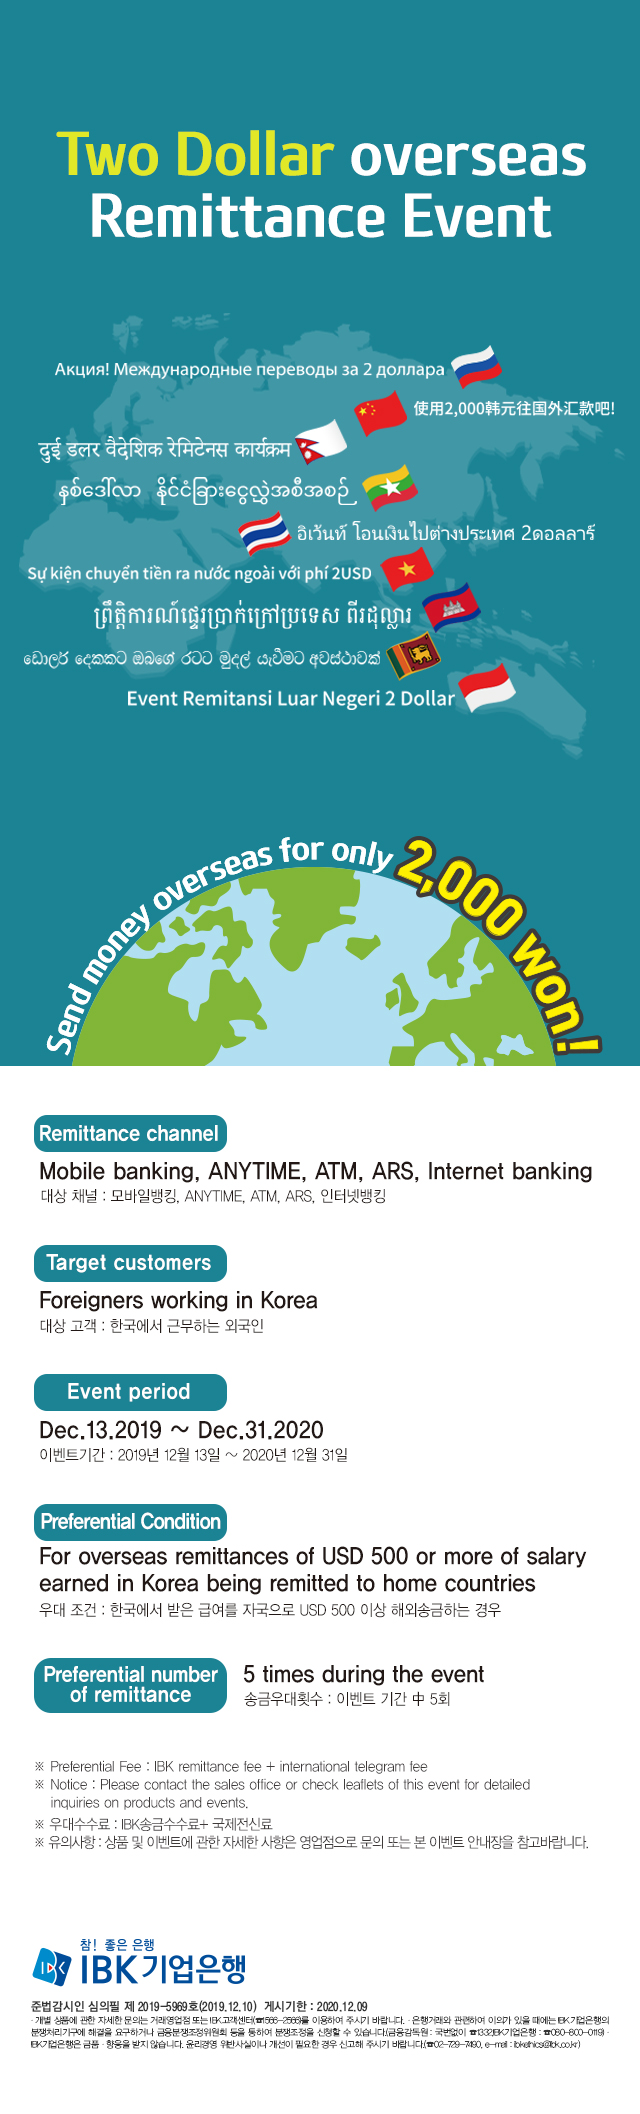 Two Dollar Overseas Remittance Event IBK